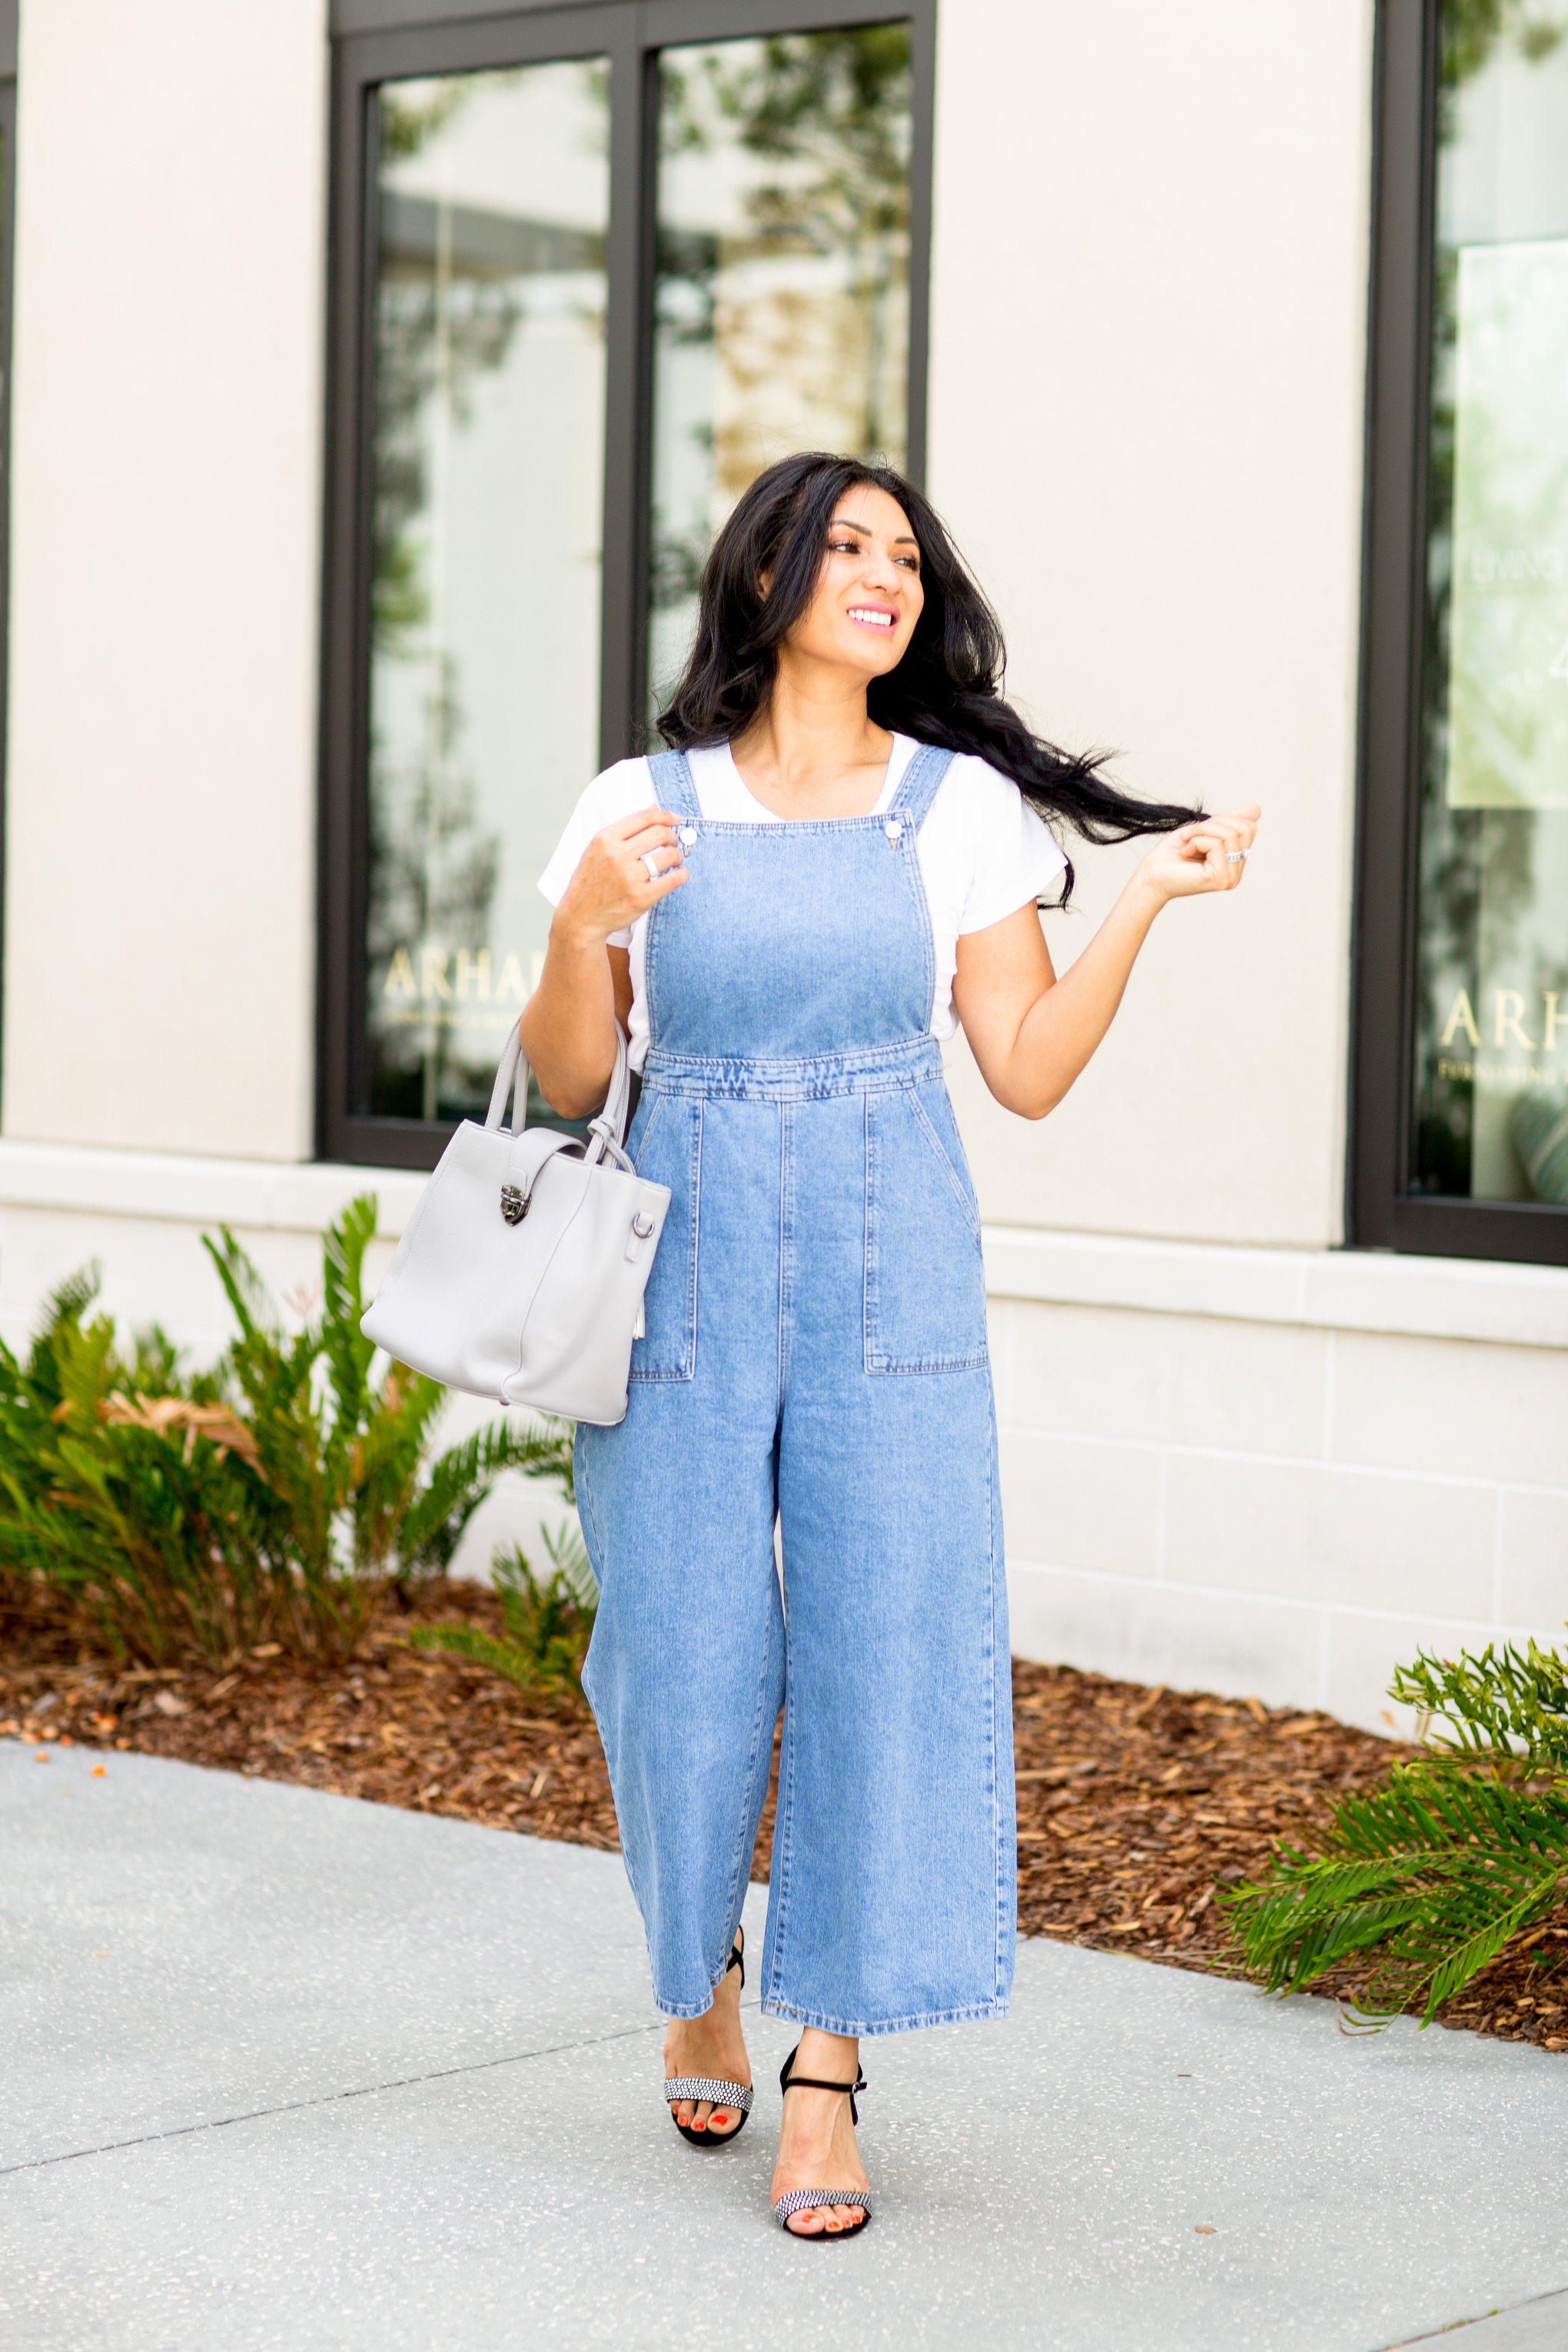 Overalls for summer? Trust me you NEED to try them. Orange County Blogger Debbie Savage is sharing why you need overalls for summer and how to style them here! Click here to see more!